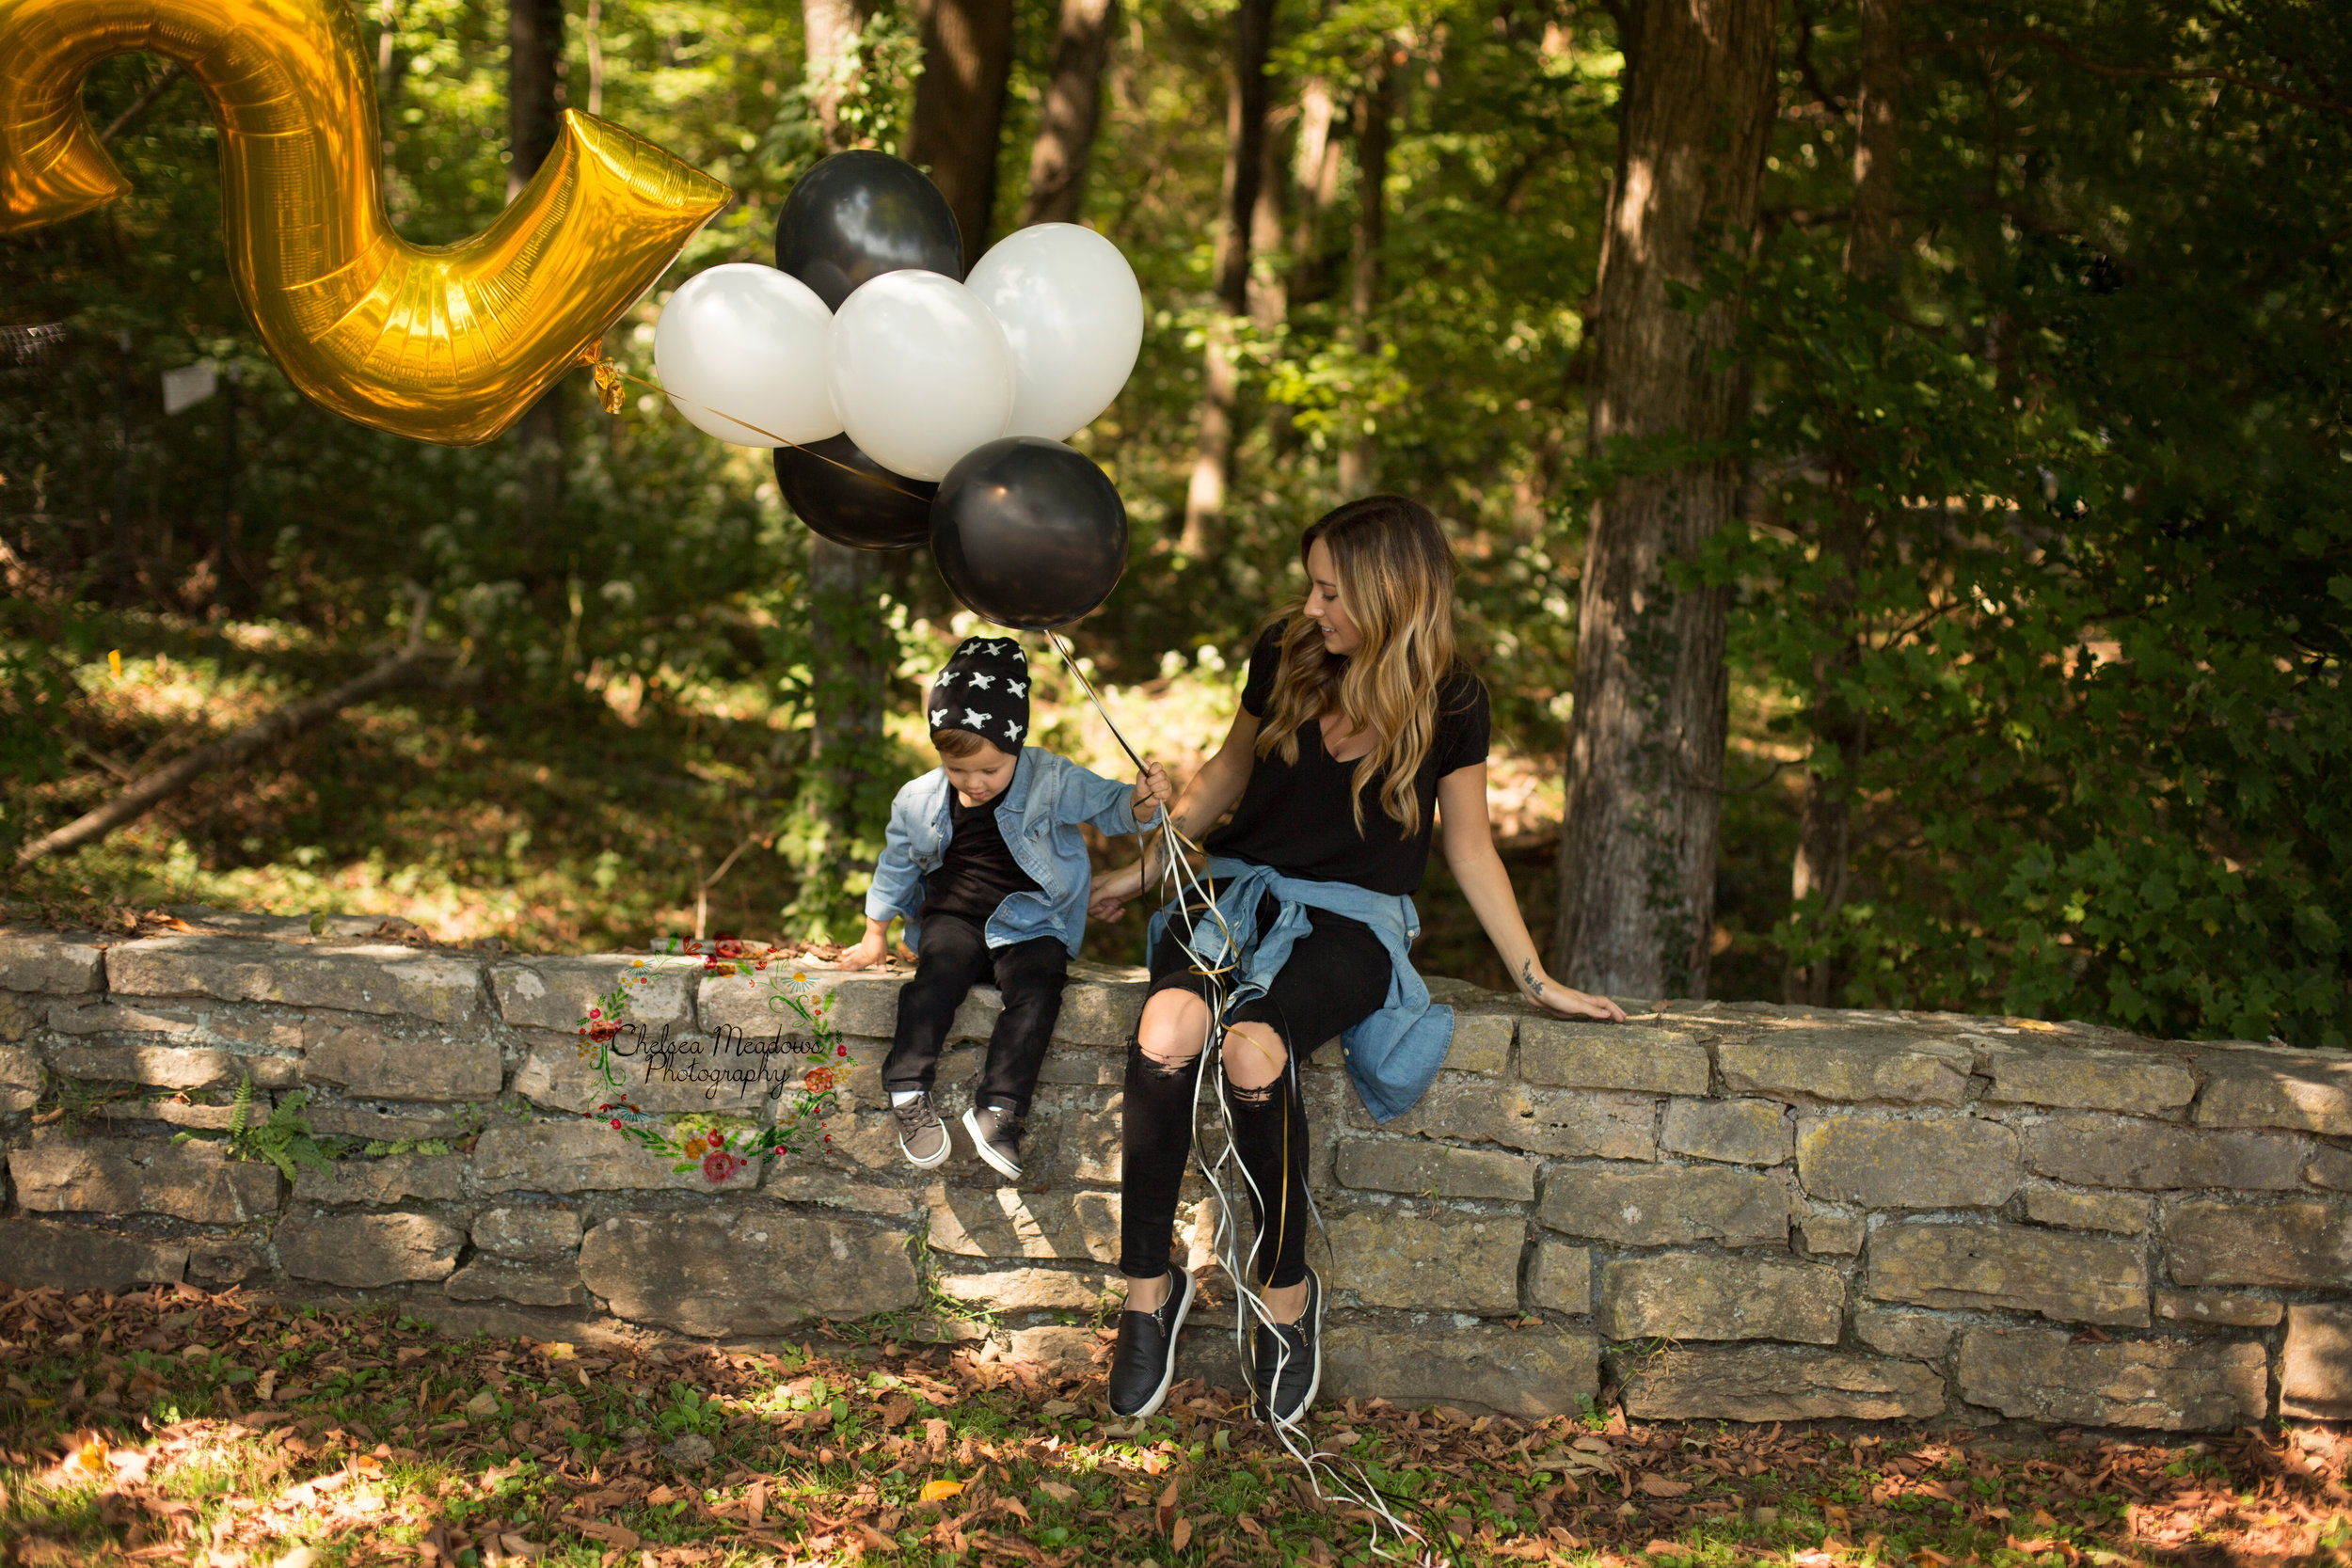 Ryder 2nd Birthday - Nashville Family Newborn Photographer - Chelsea Meadows Photography_edited-1.jpg